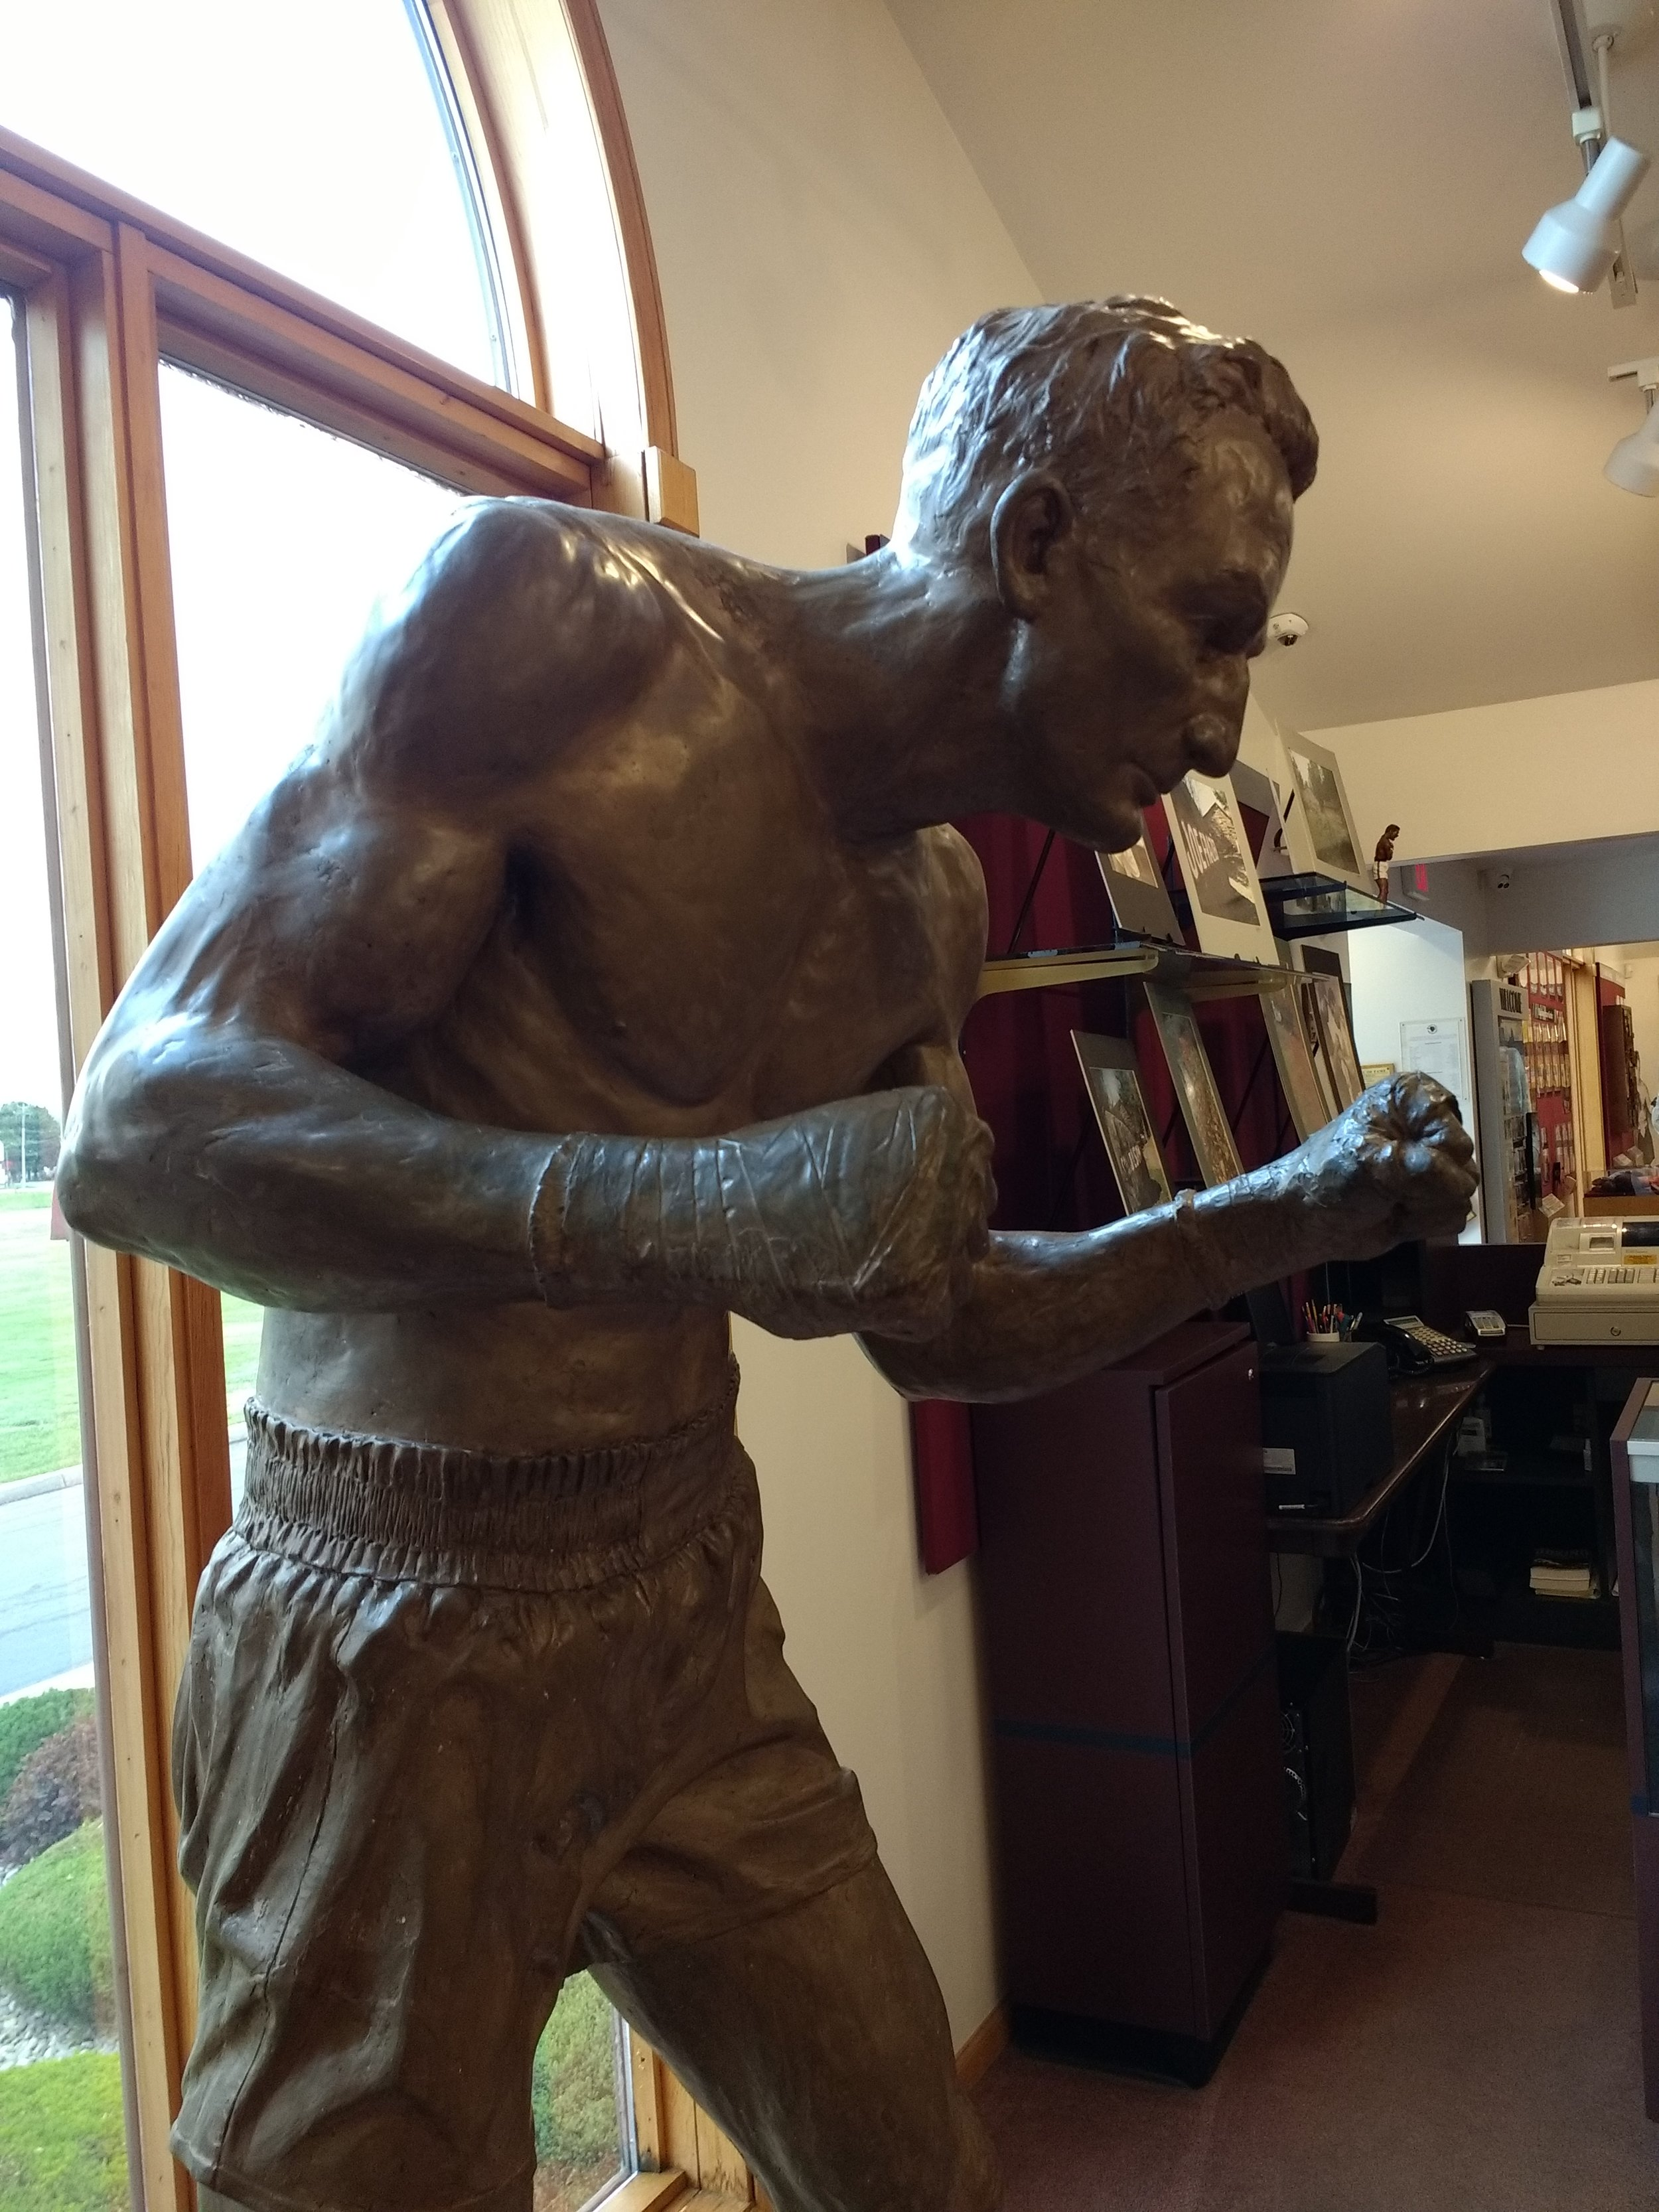 The great  Carmen Basilio . Fighting stances have changed so much!